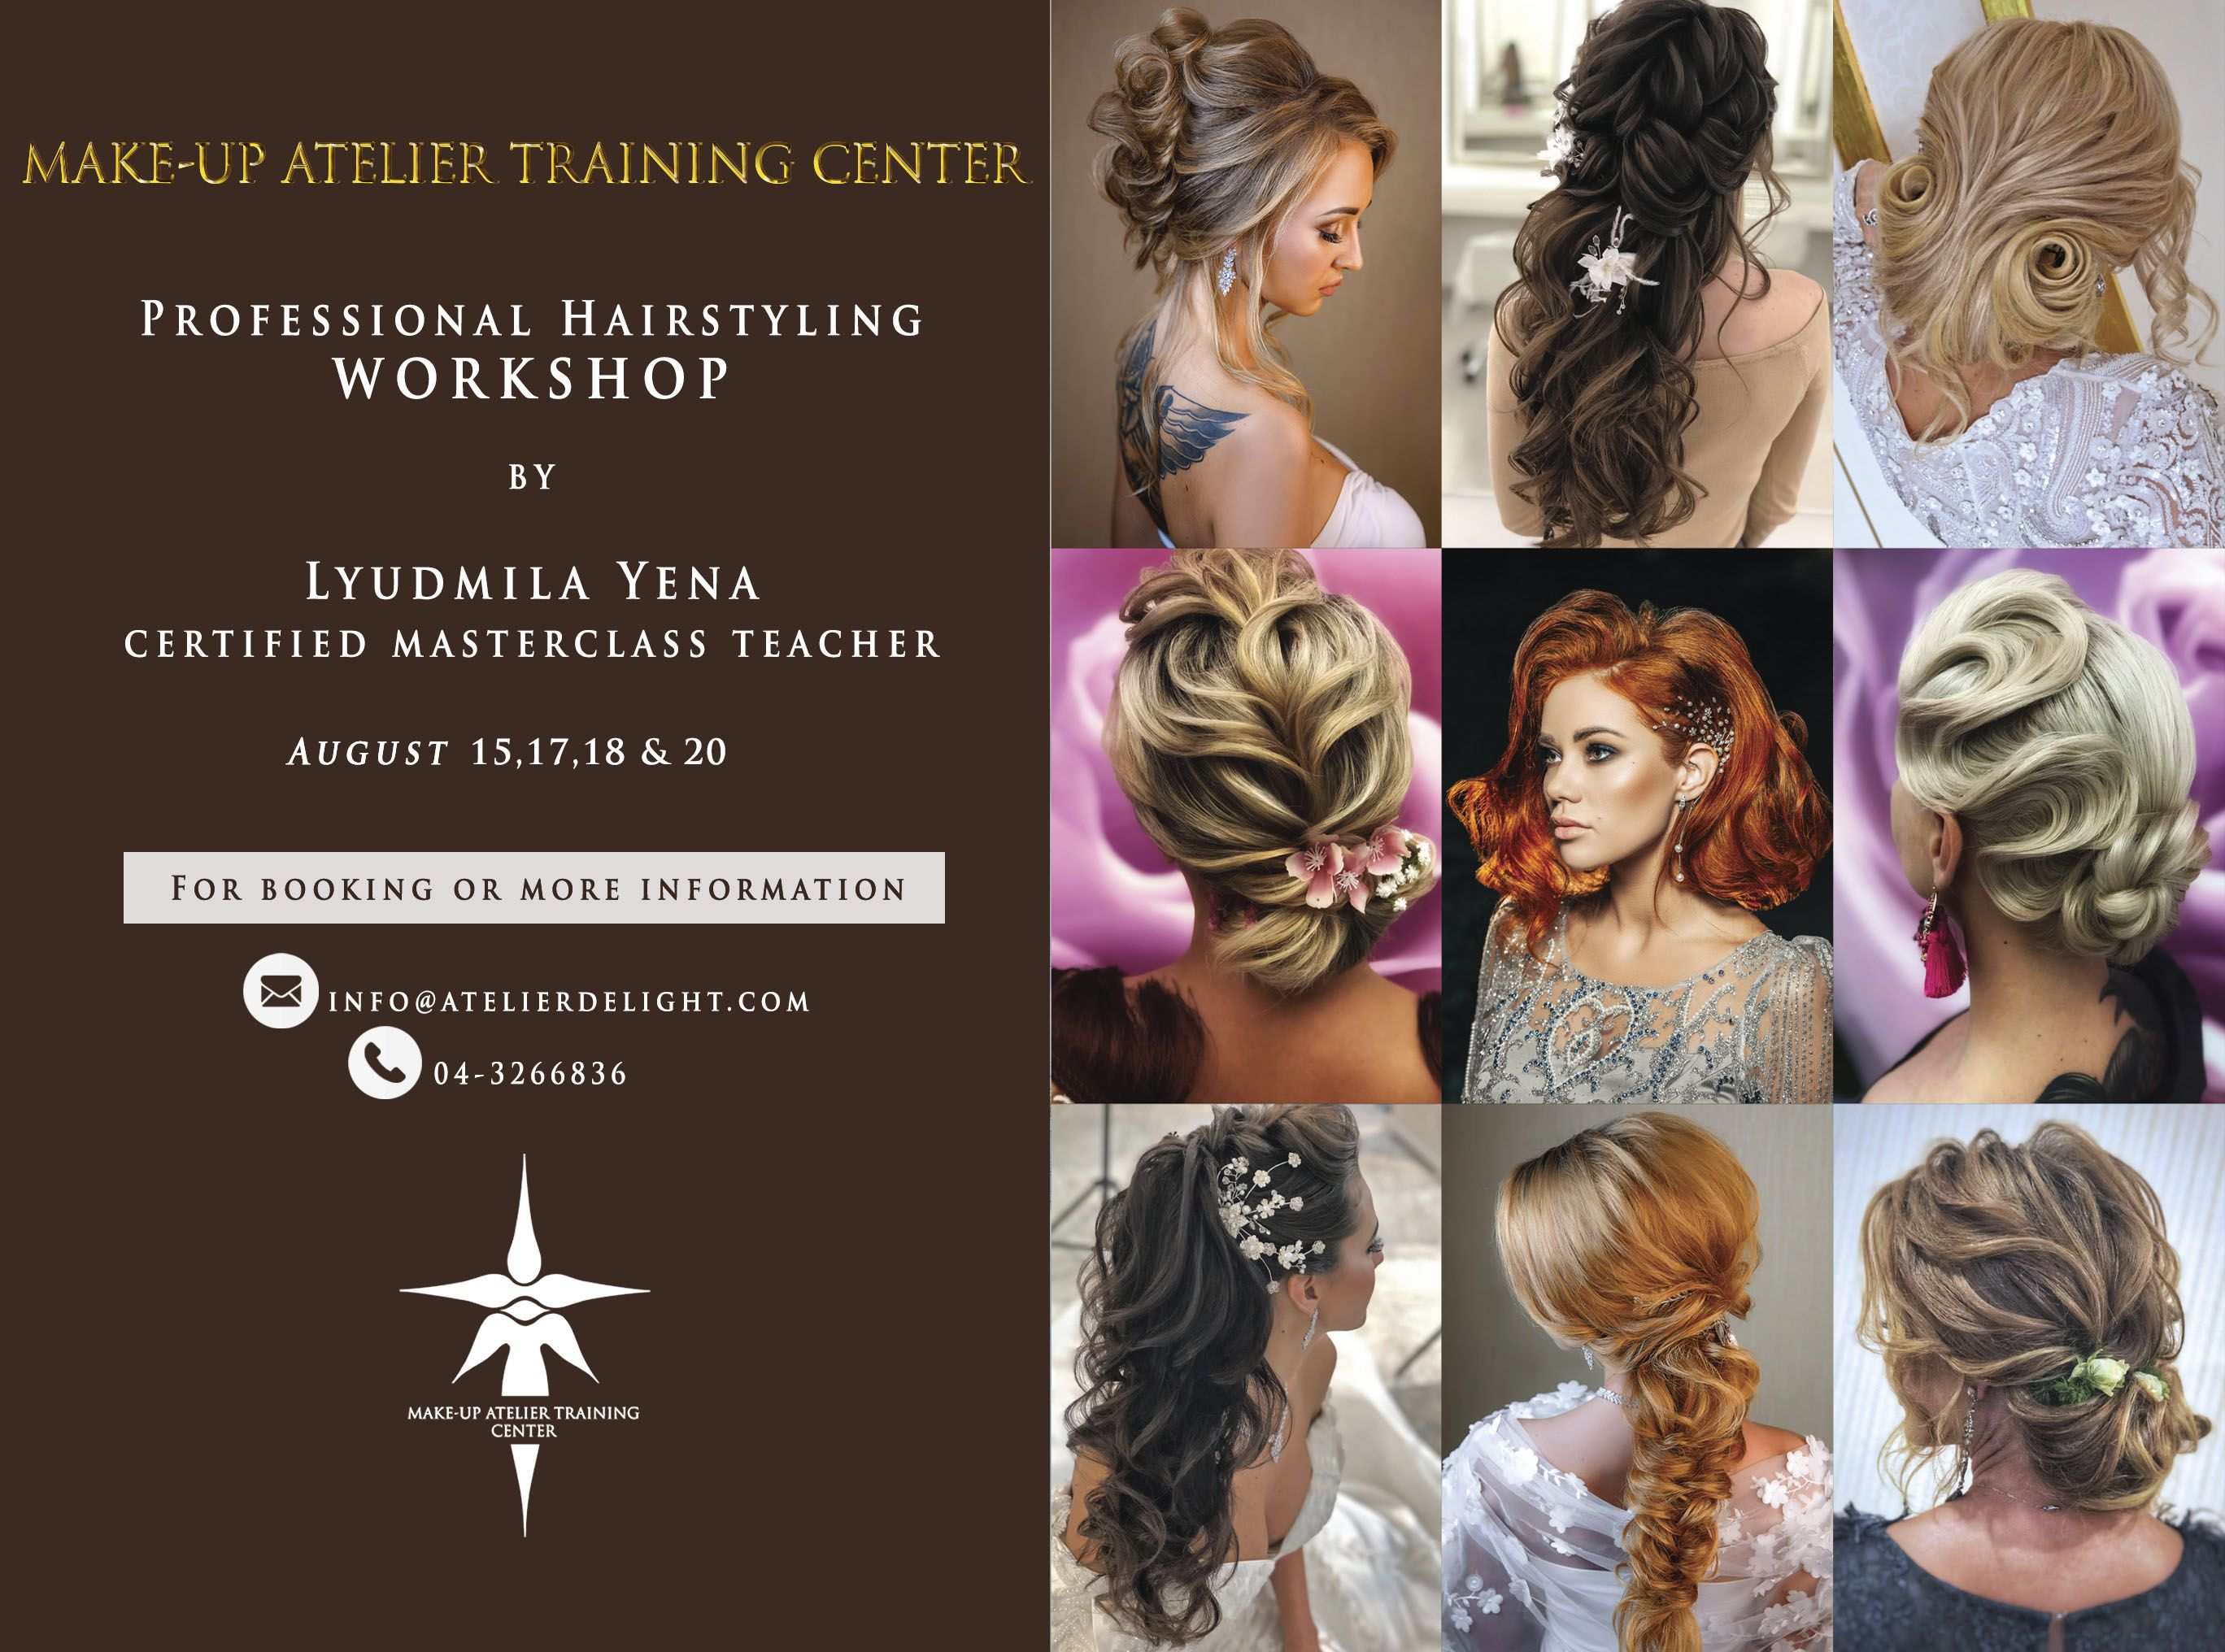 Hairstyling Workshop Makeup Course Beauty Academy Hair Styles